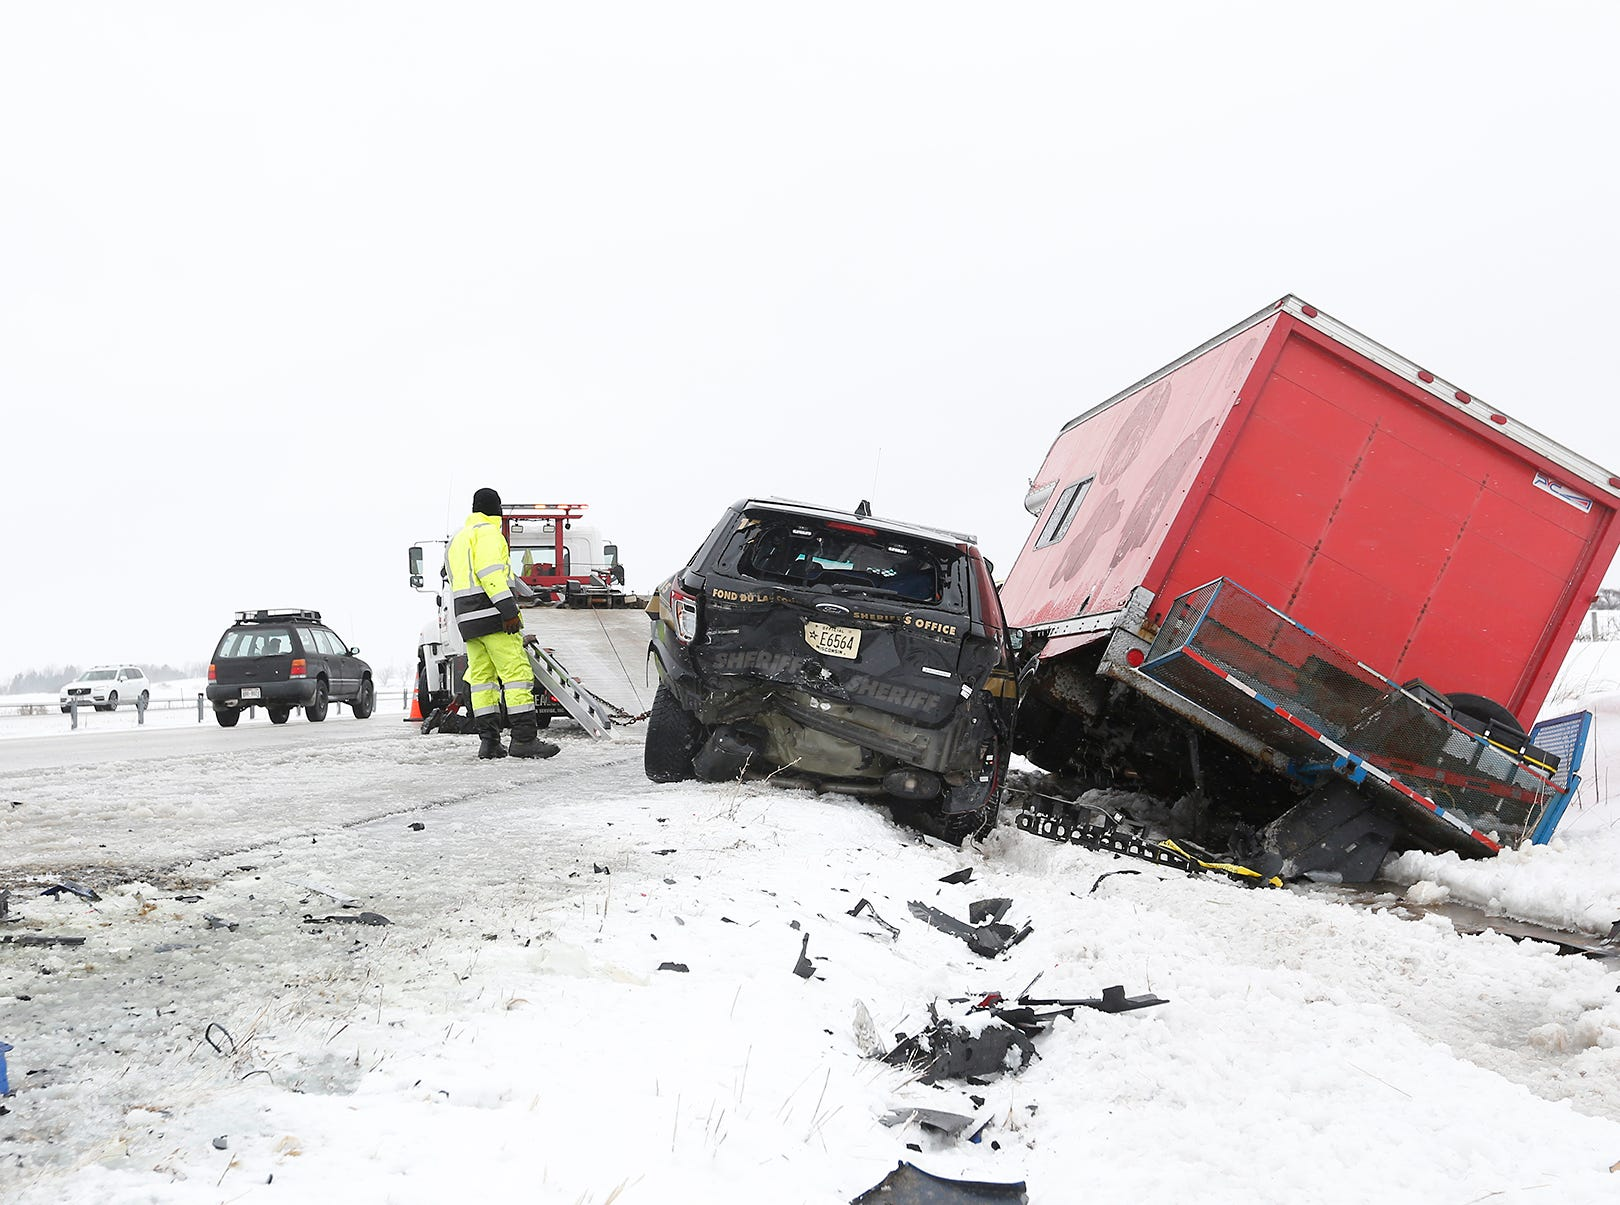 A tow truck operator gets ready to load up a Fond du Lac County Sheriff's Office squad car that was involved in a 3 vehicle crash Sunday, February 24, 2019 on I-41 near County Highway F, south of Fond du Lac, Wisconsin. High winds and blowing snow caused near white-out conditions in parts of the state. Doug Raflik/USA TODAY NETWORK-Wisconsin